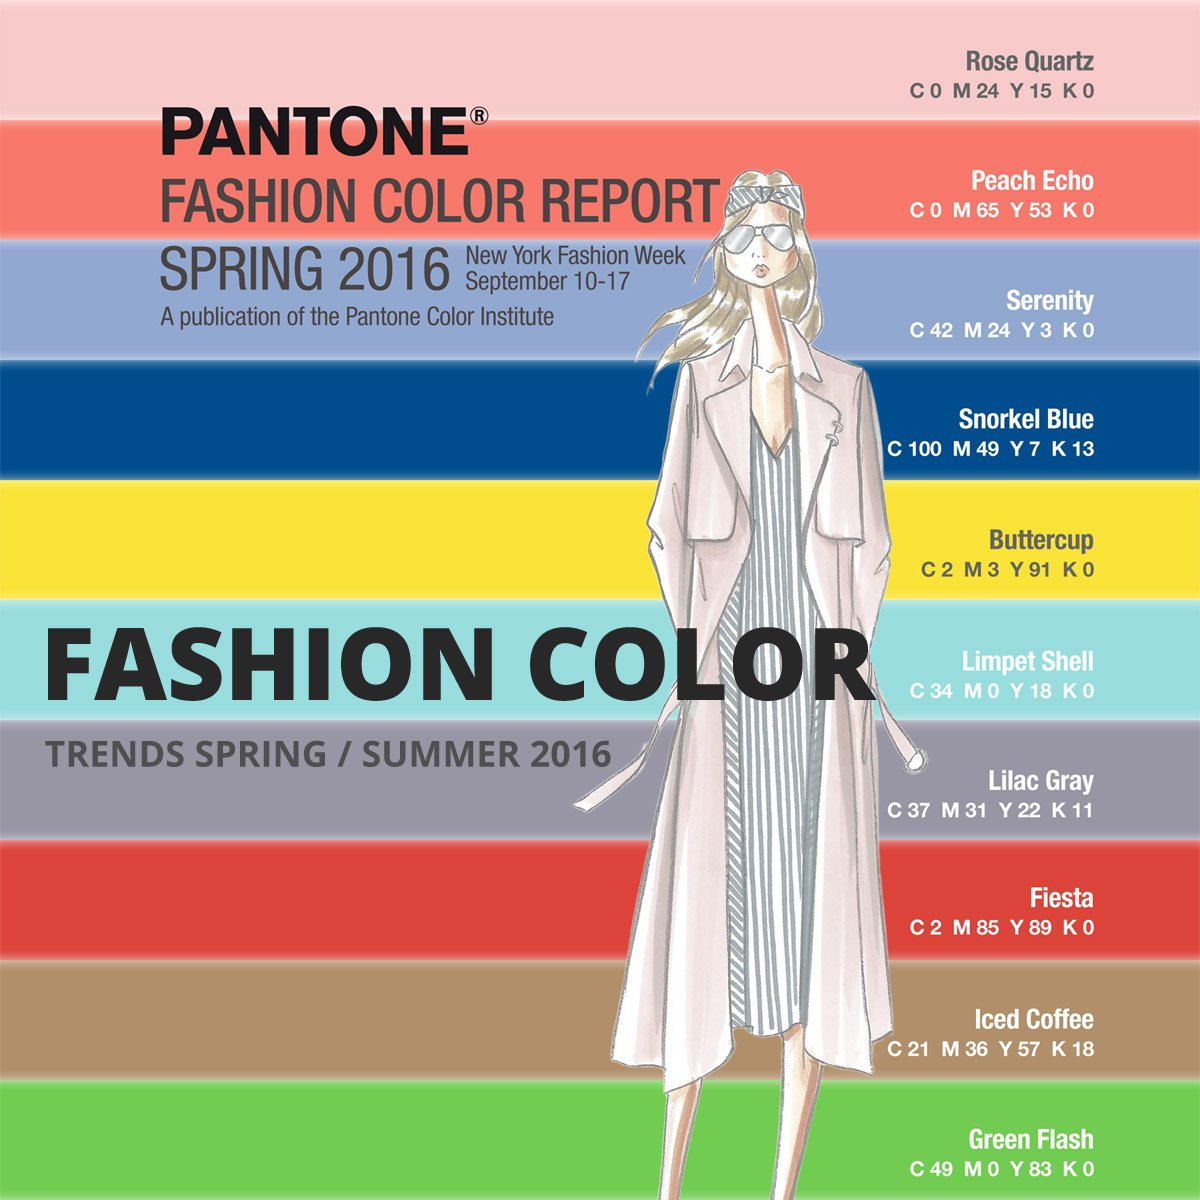 According To The Pantone Website Consumers Are Seeking Mindfulness And Well Being As An Antidote Modern Day Stresses Welcoming Colors That